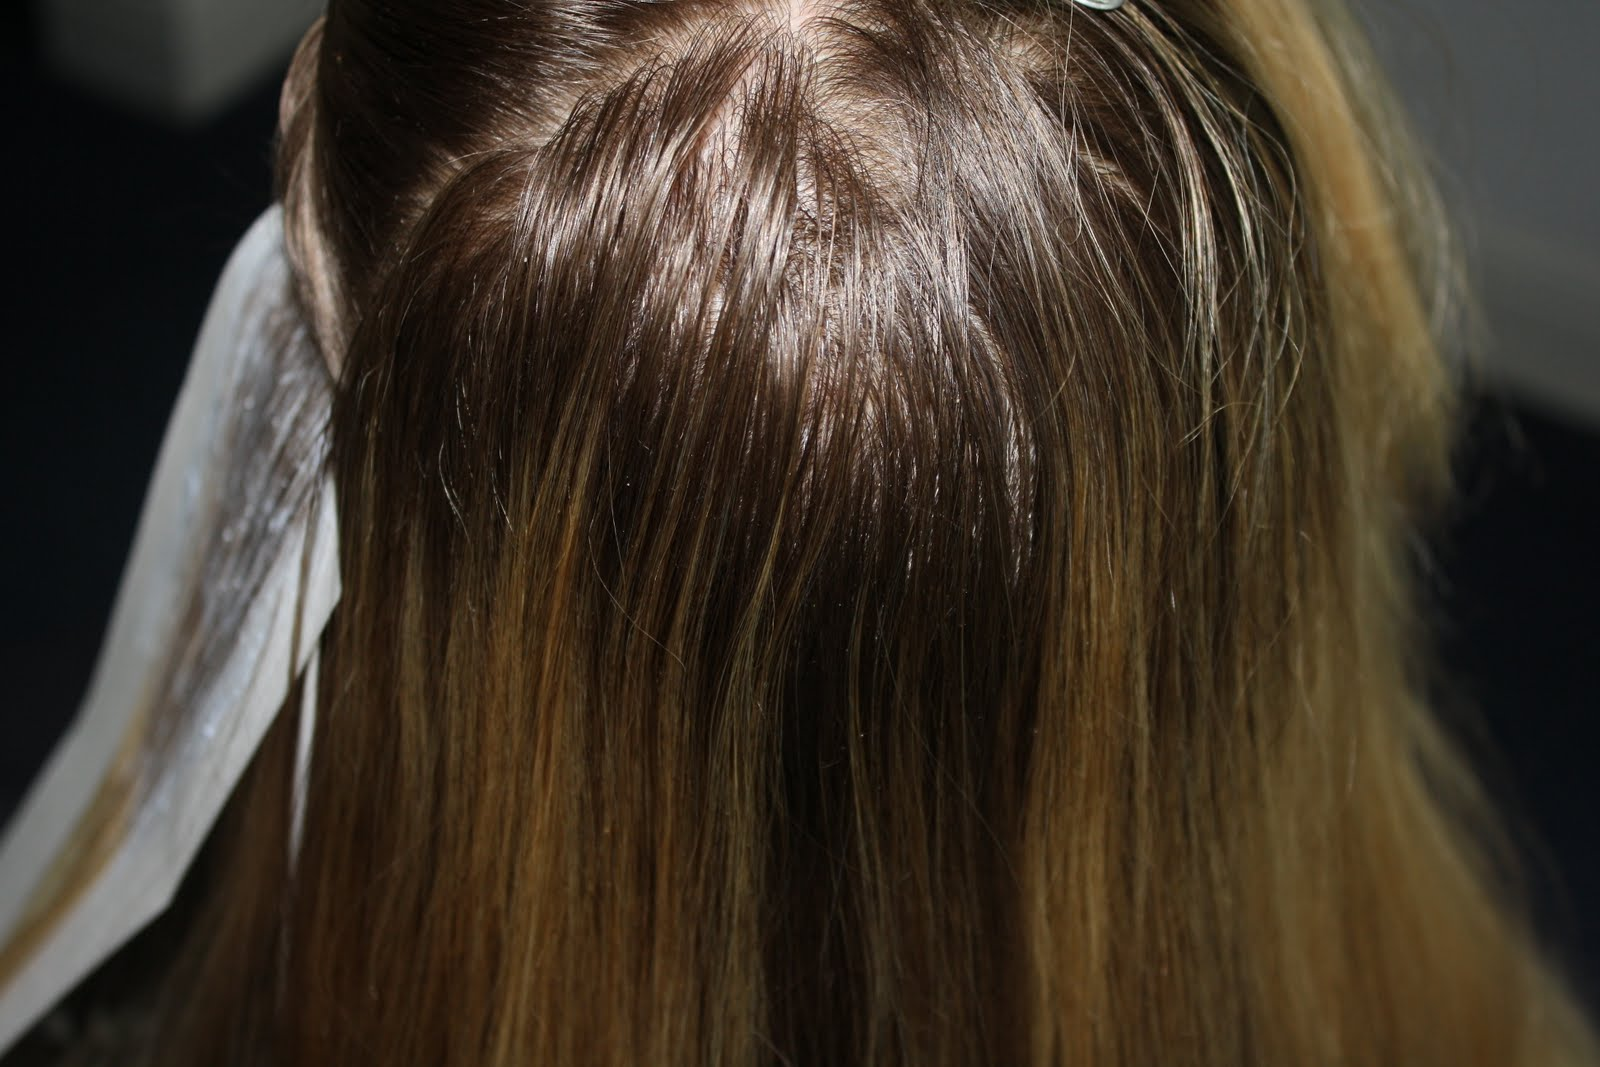 root perms on thin hair to download photos of root perms on thin hair ...